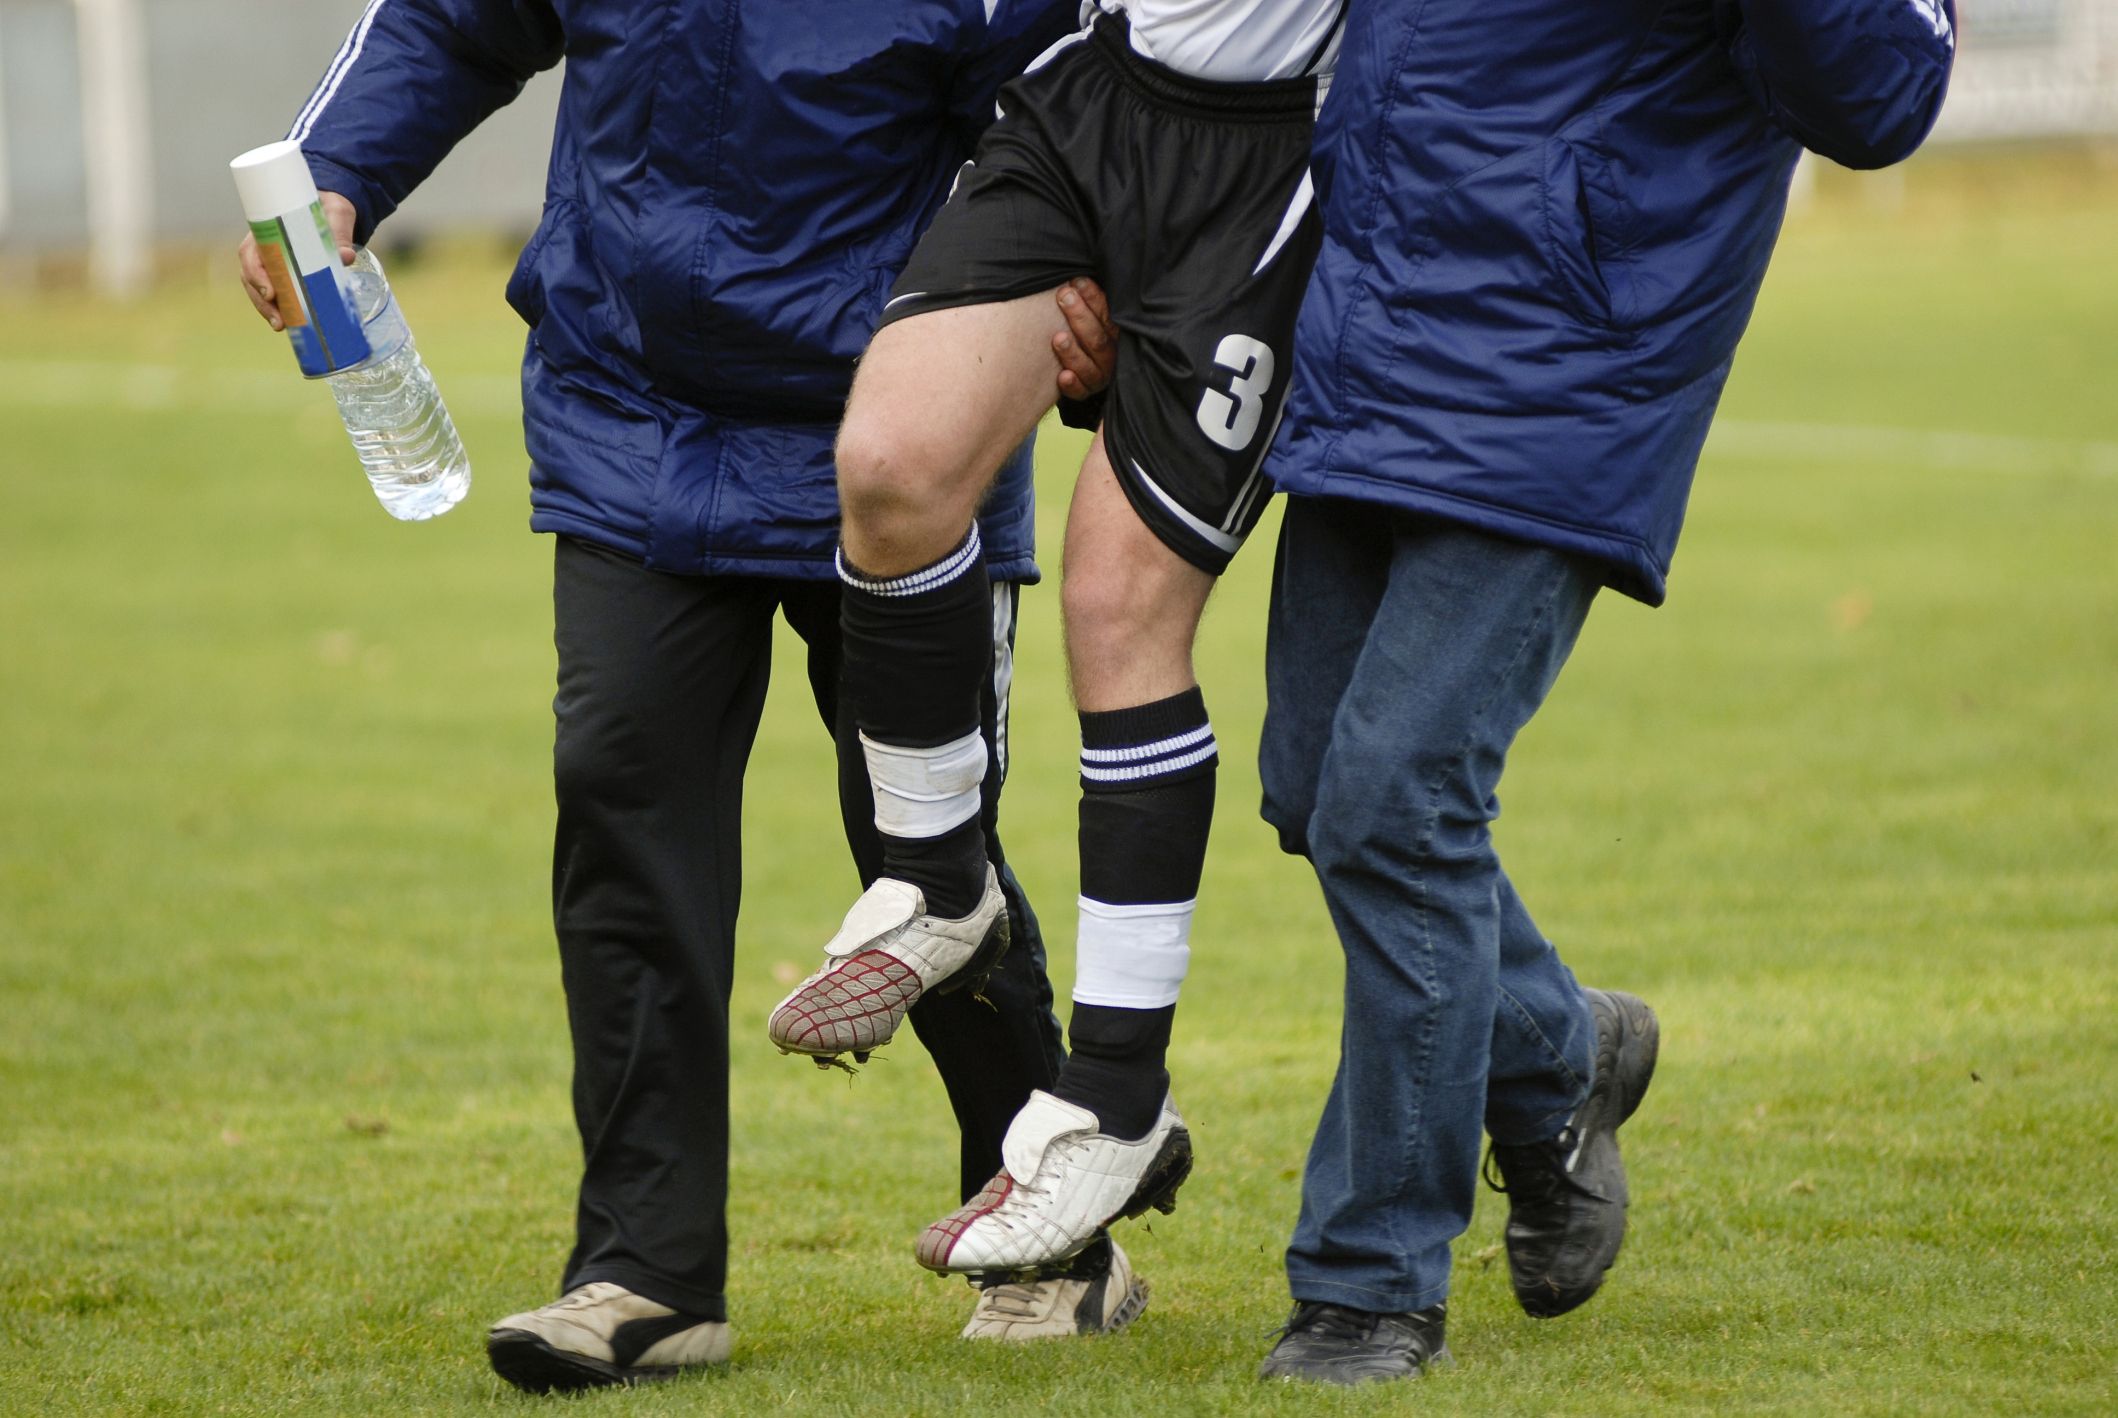 Do You Get Hurt More in Soccer or Football?